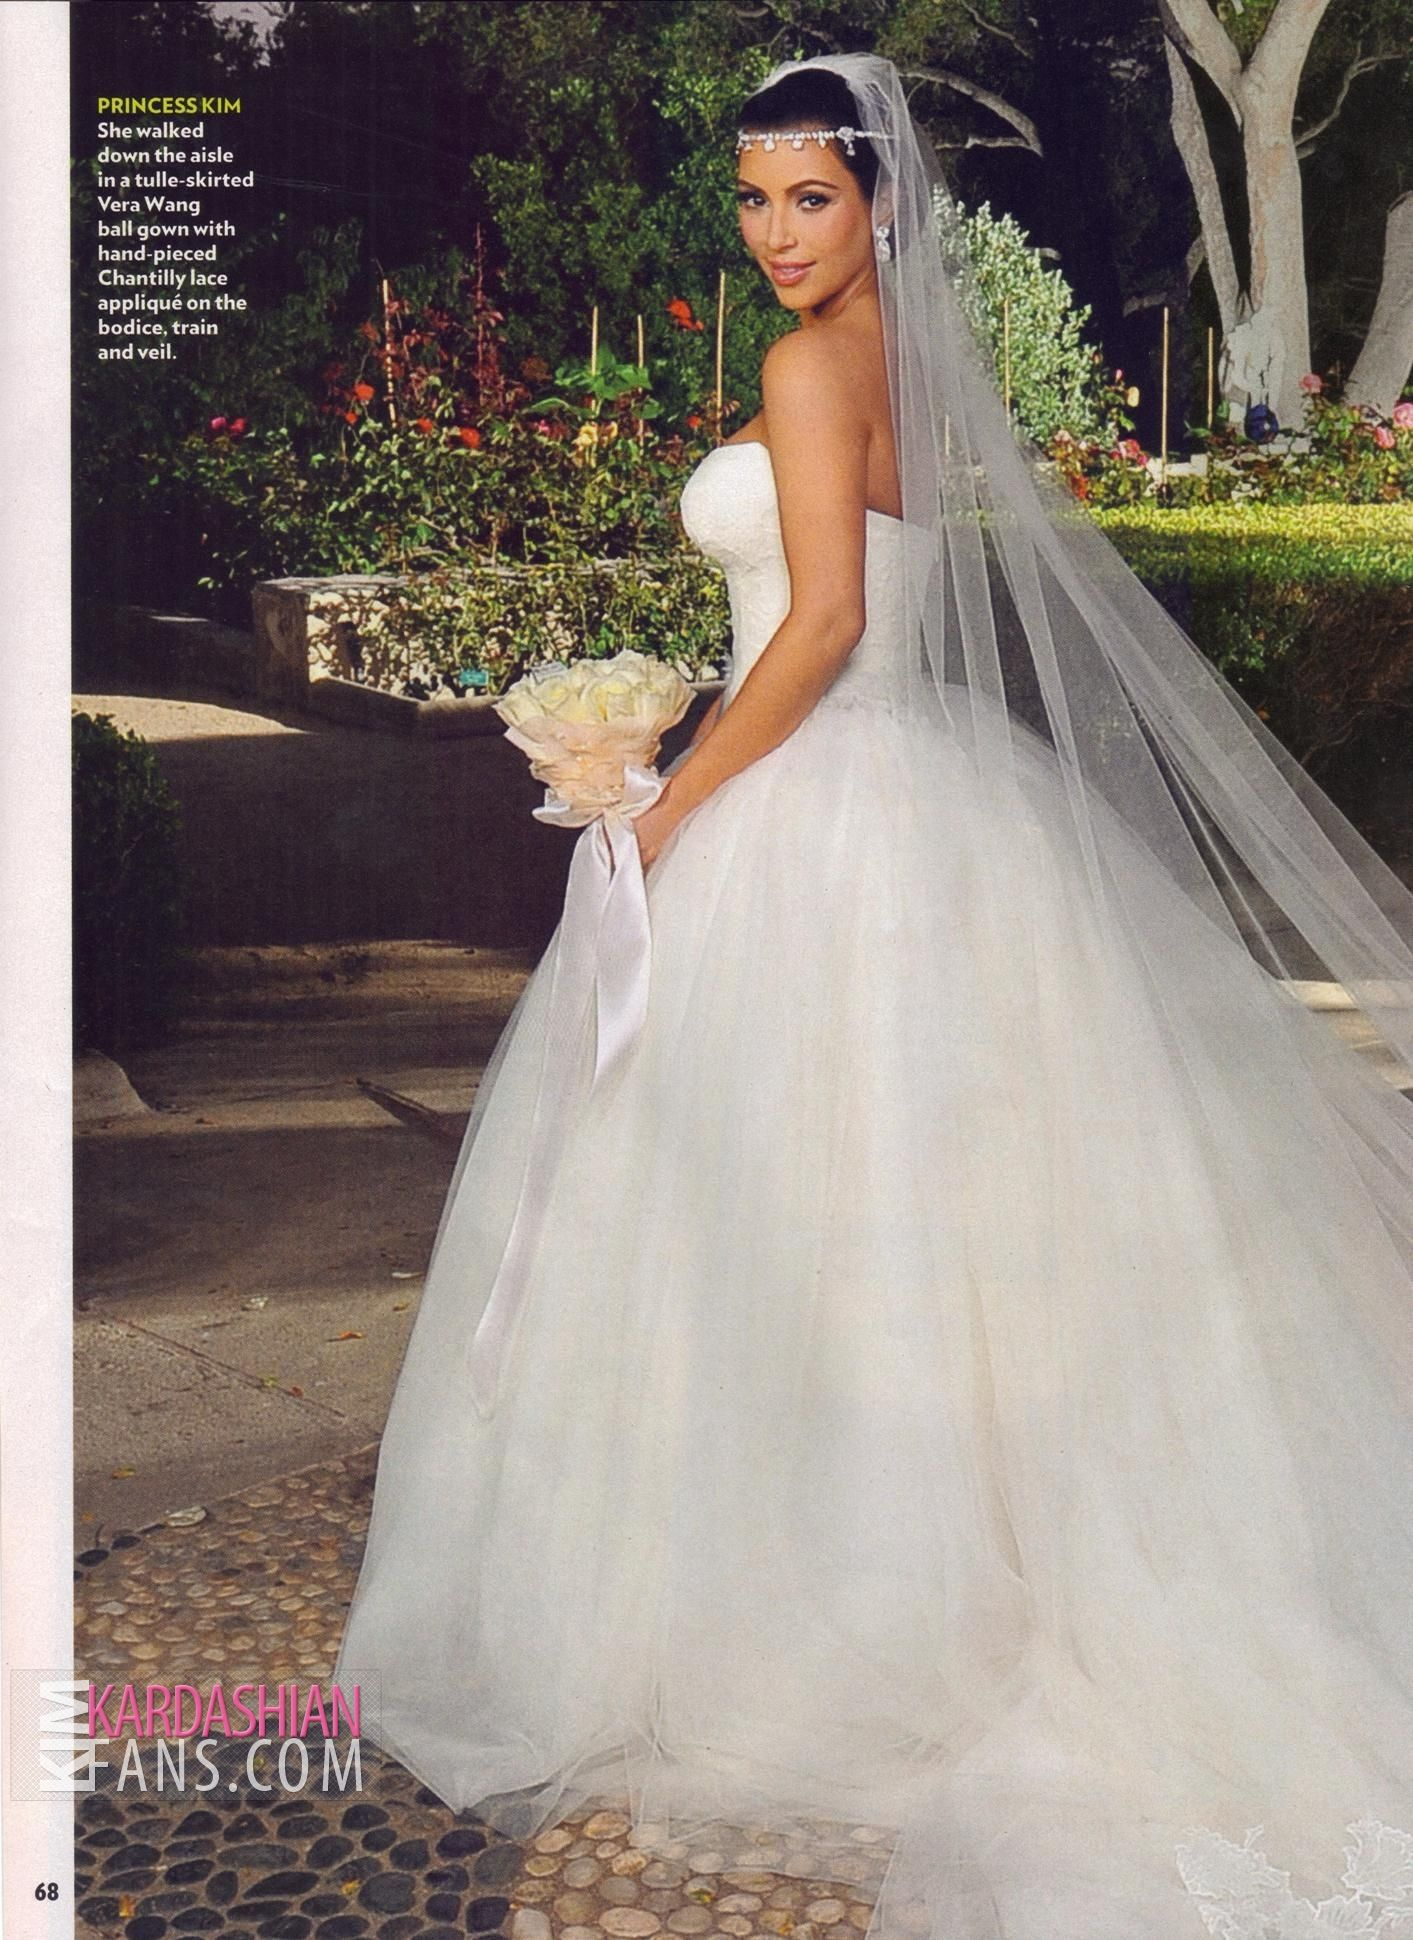 Kim Kardashian Wedding - 2 | A Little Bit of Everything ...